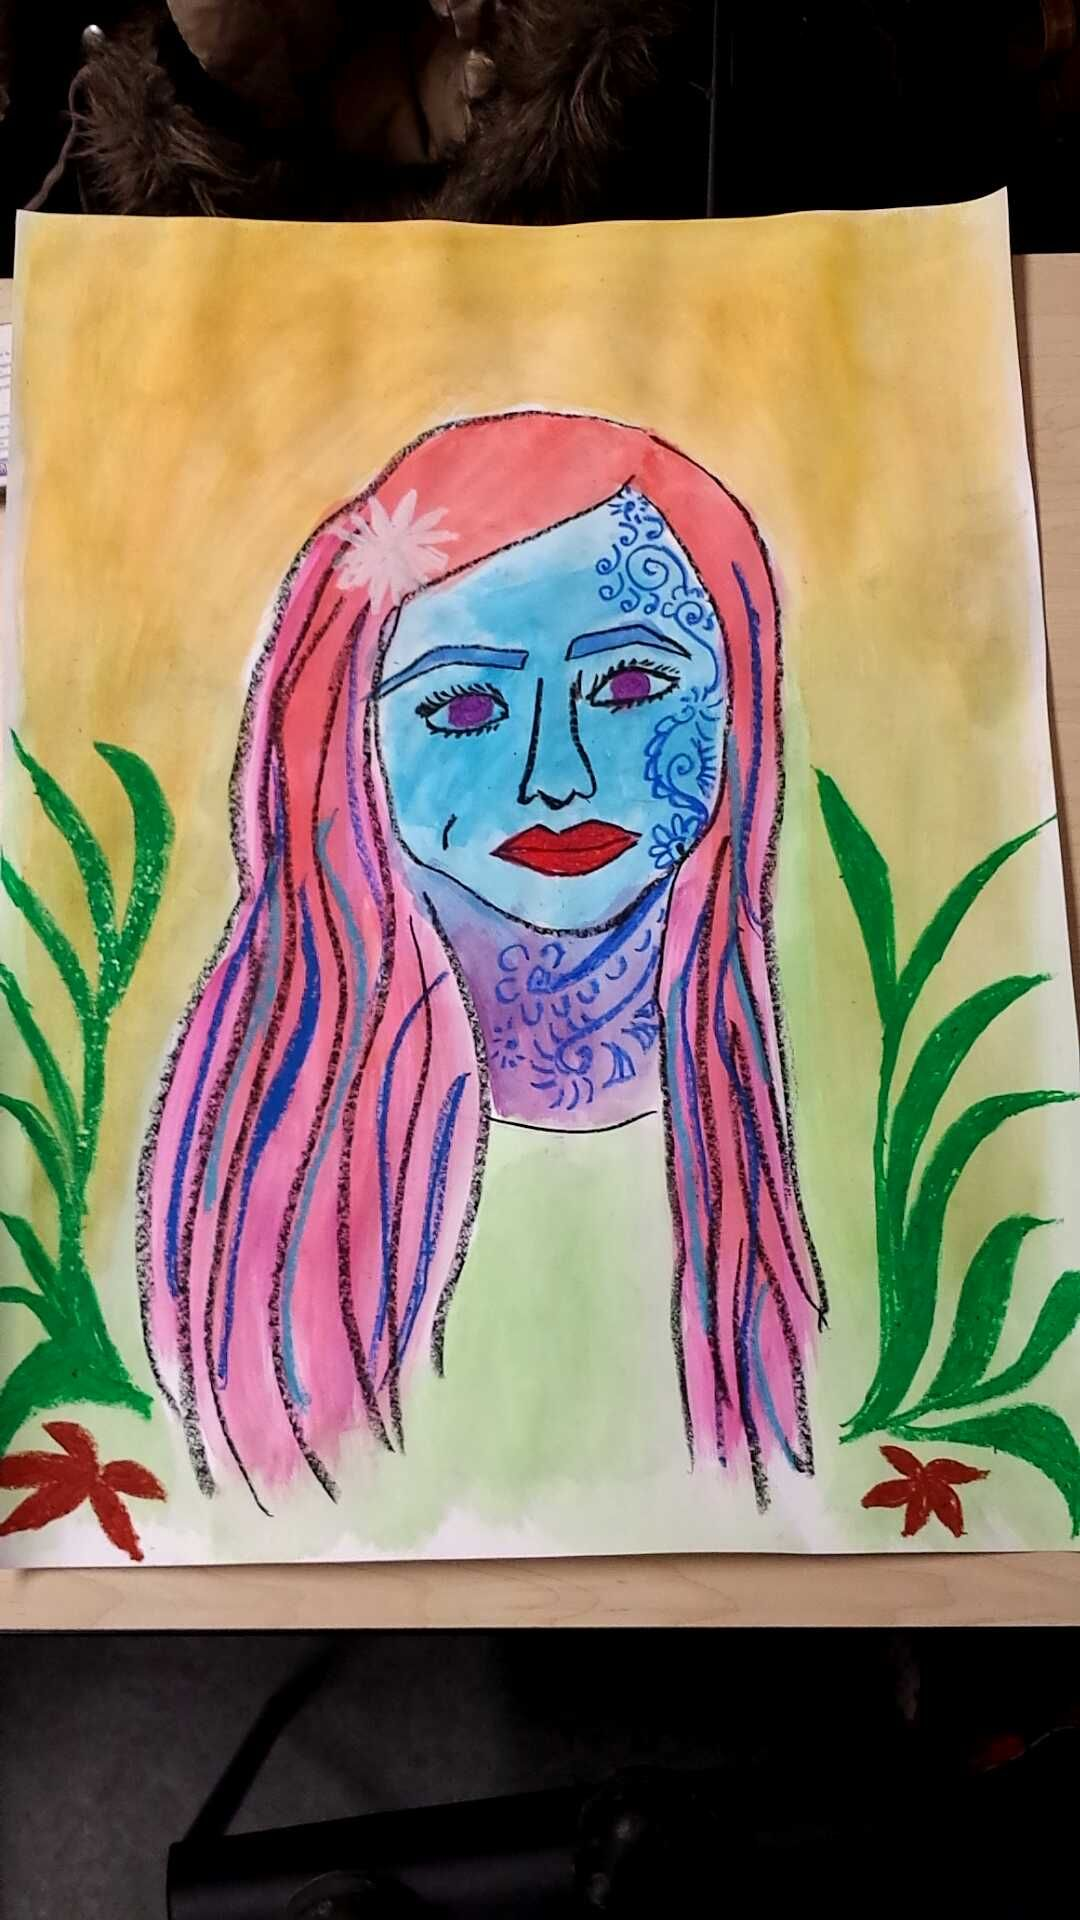 Another example of the end product of an oil pastel + watercolor #selfie!